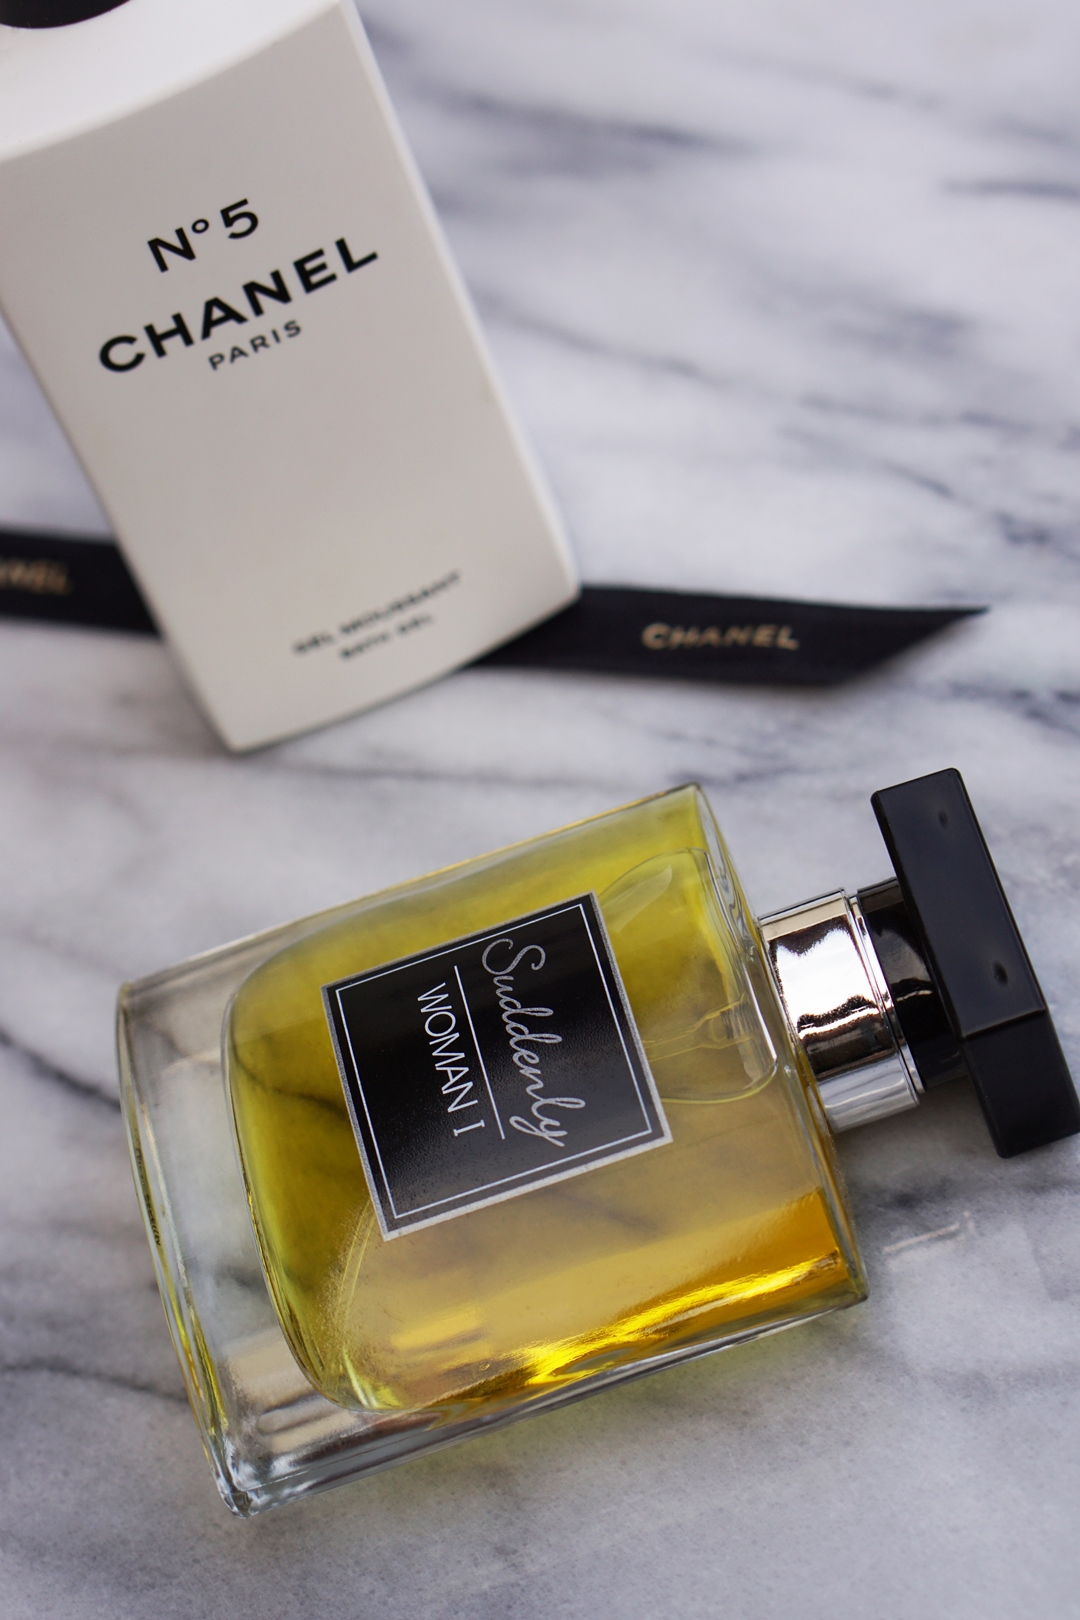 Lidl Suddenly Woman I, Chanel N°5 dupe